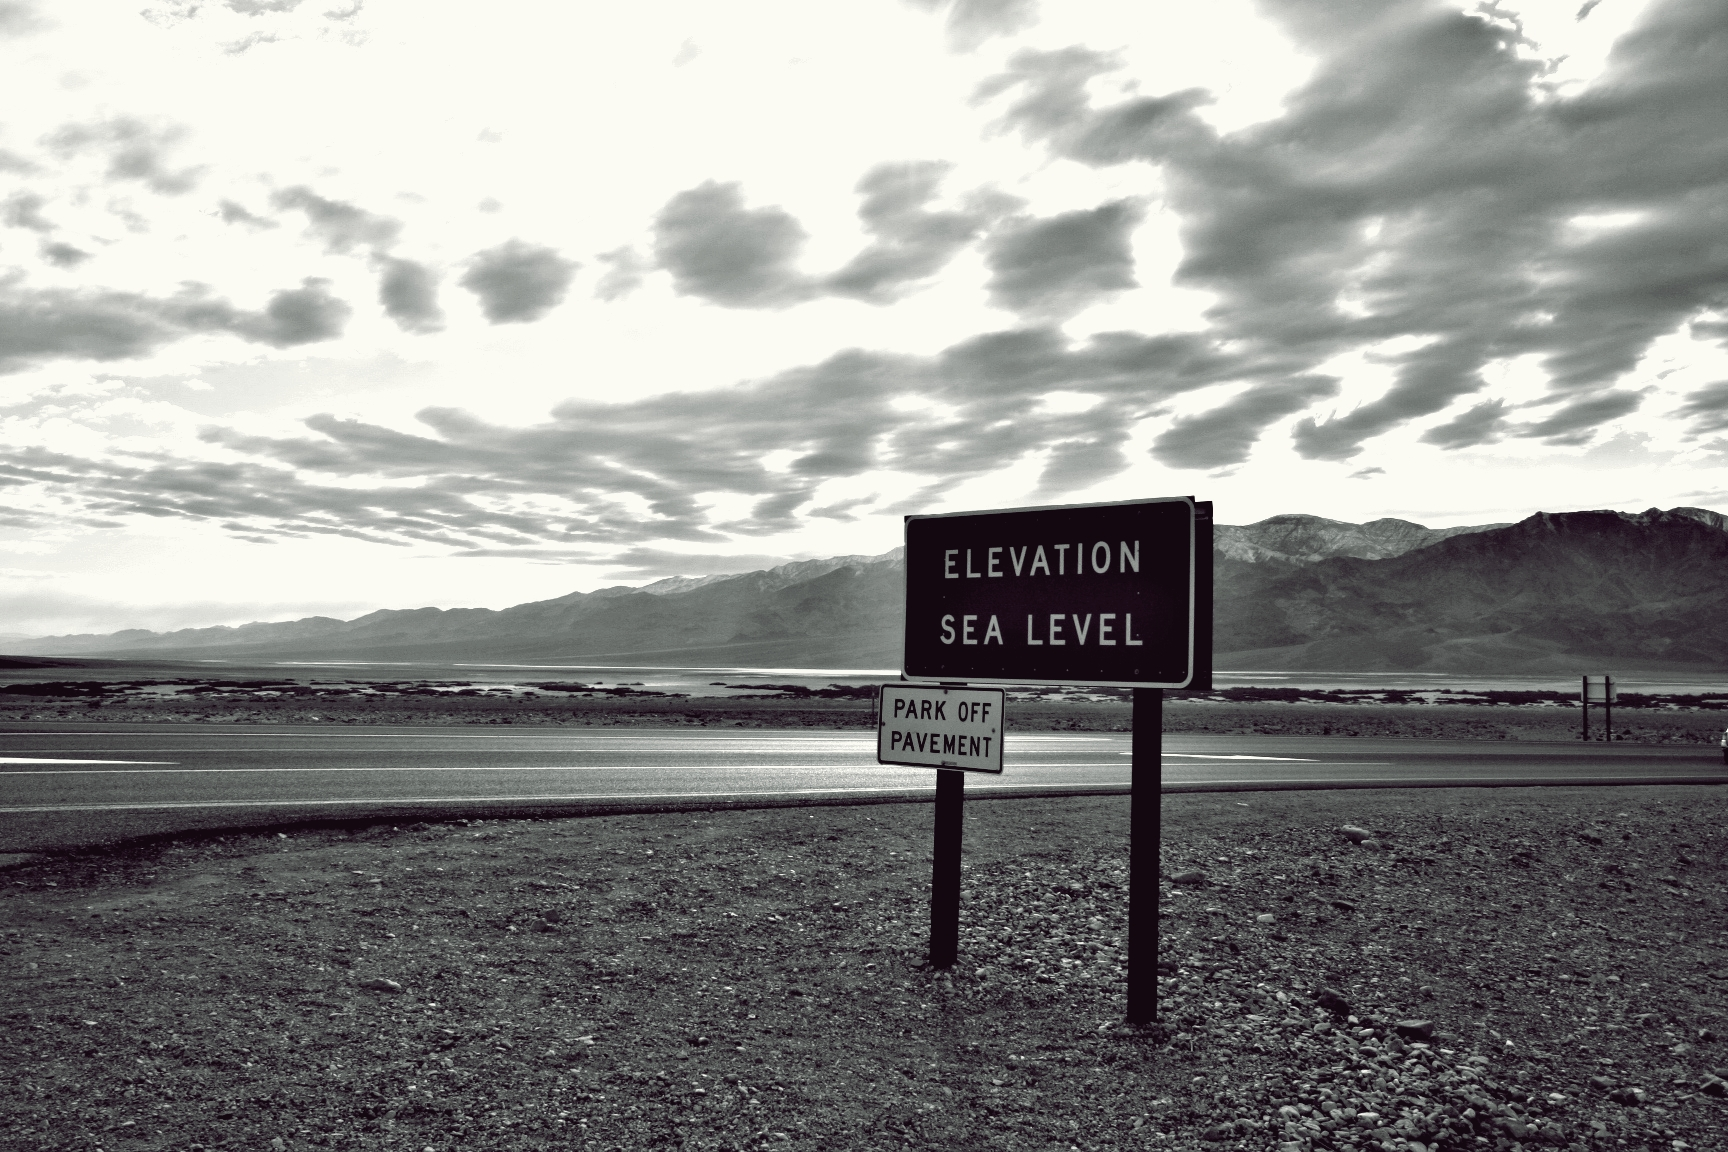 | DEATH VALLEY, CA |